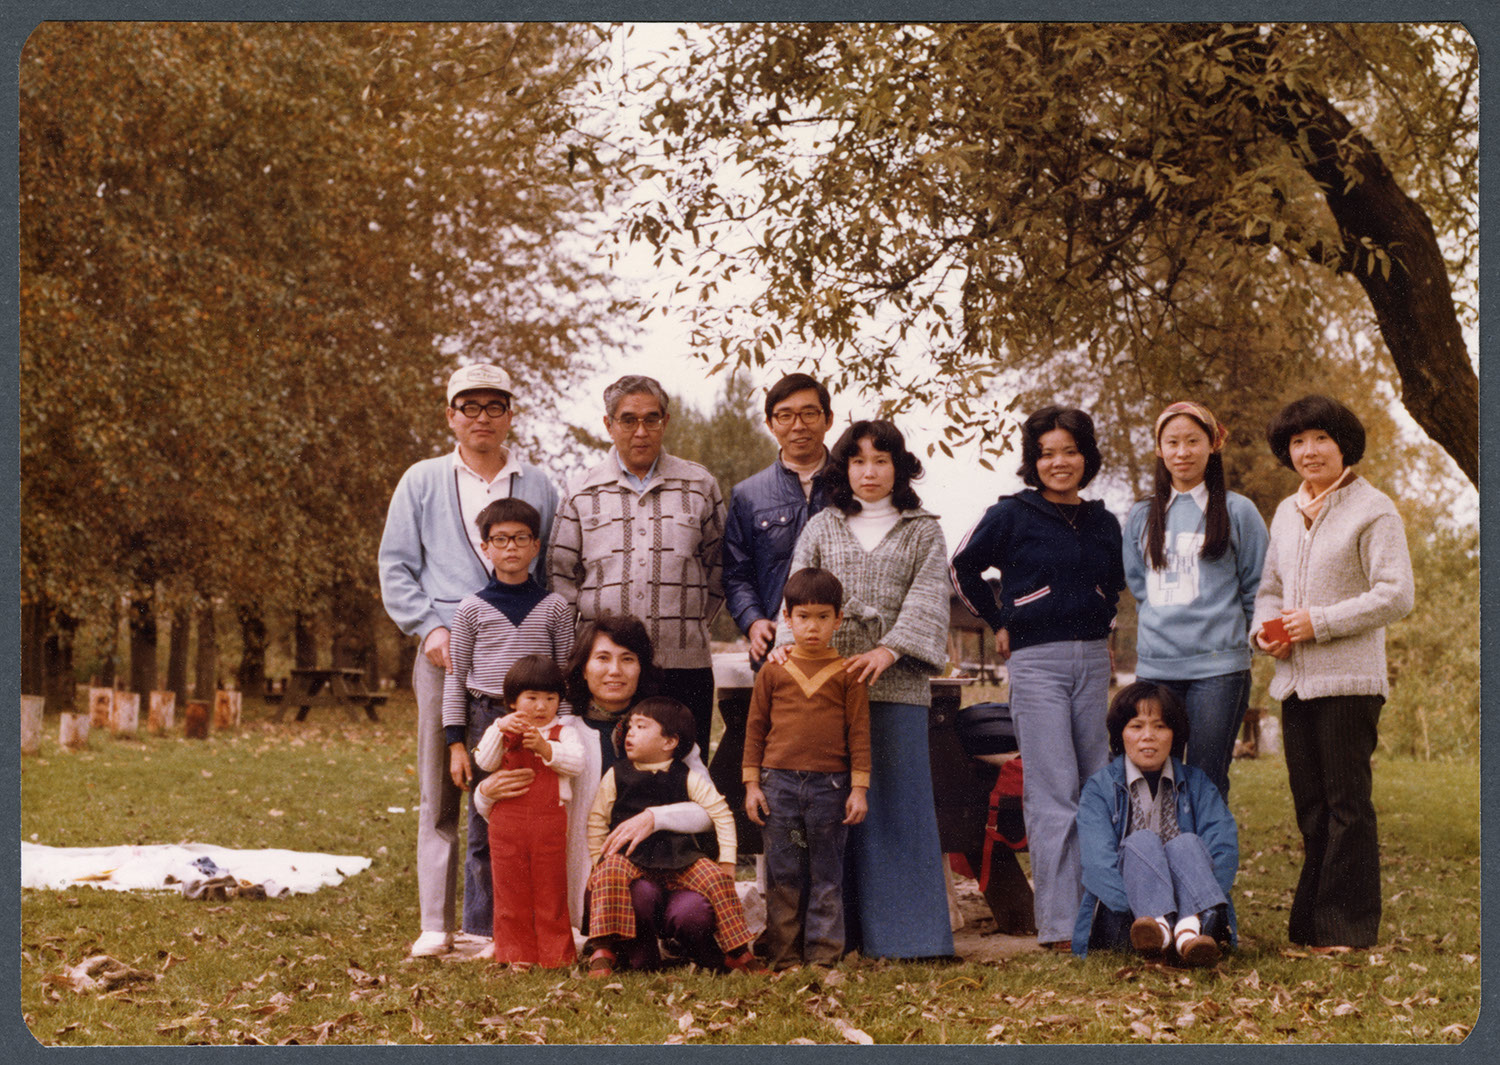 Group portrait in the park